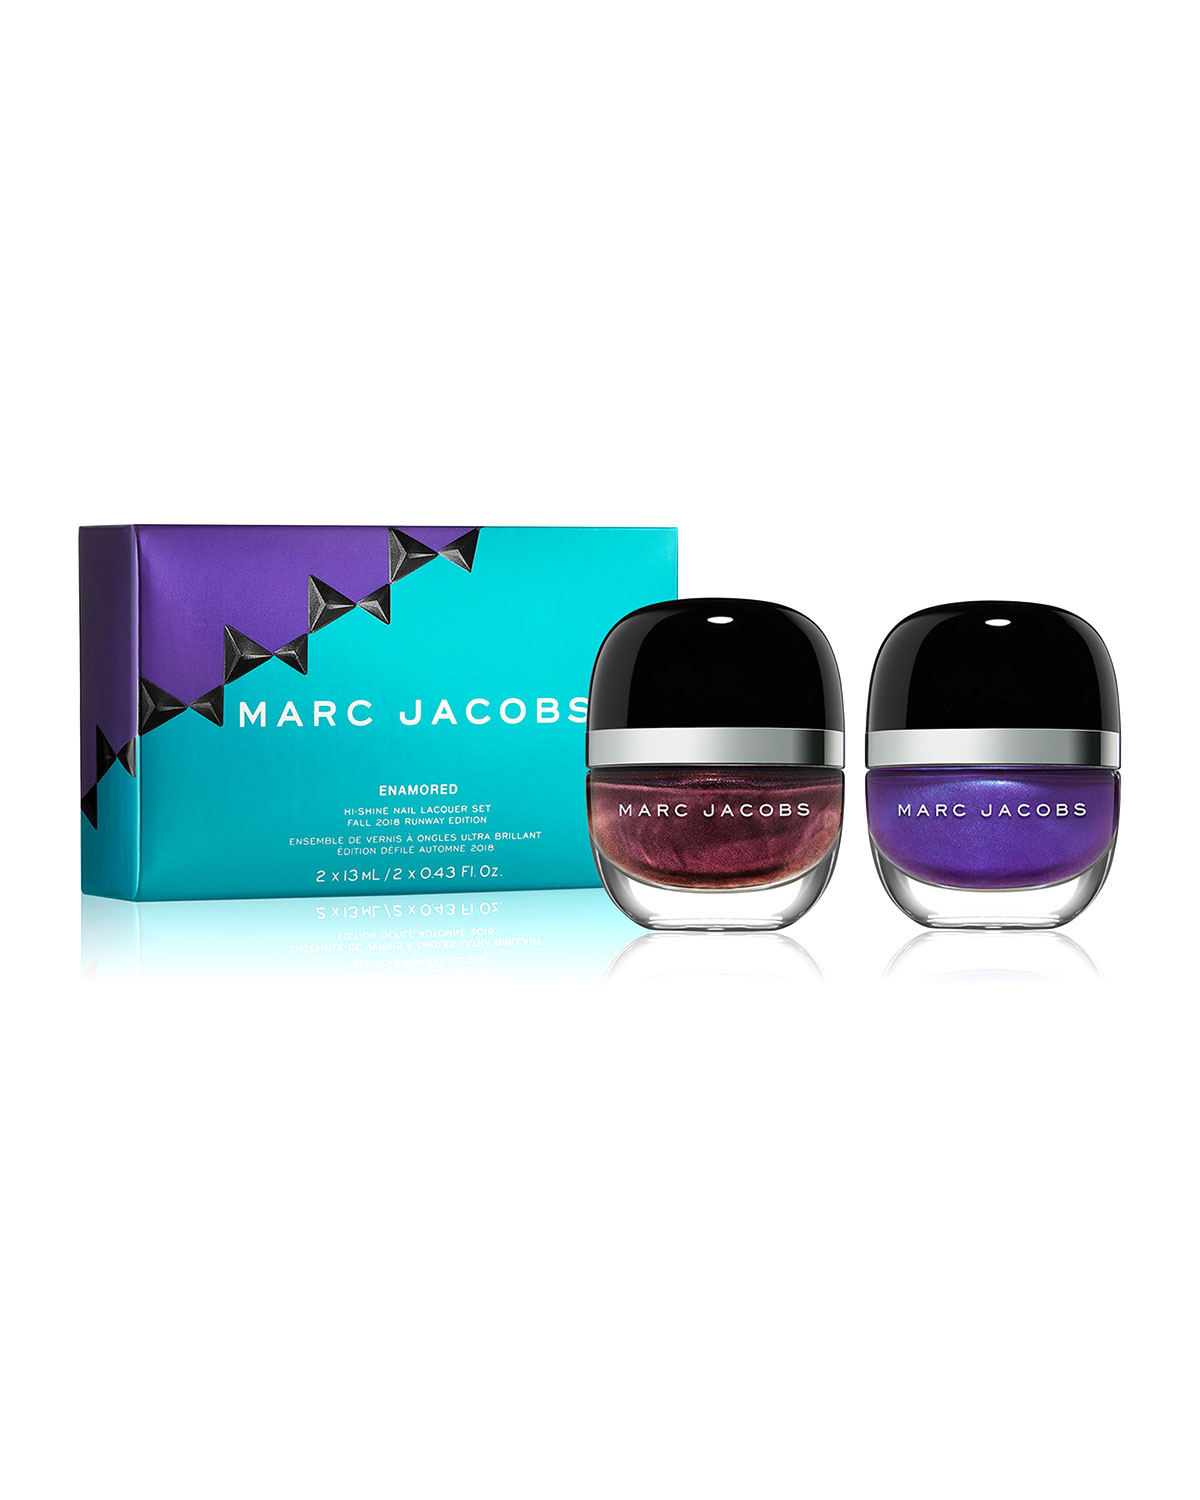 Marc Jacobs Enamored Hi-Shine Nail Lacquer Set